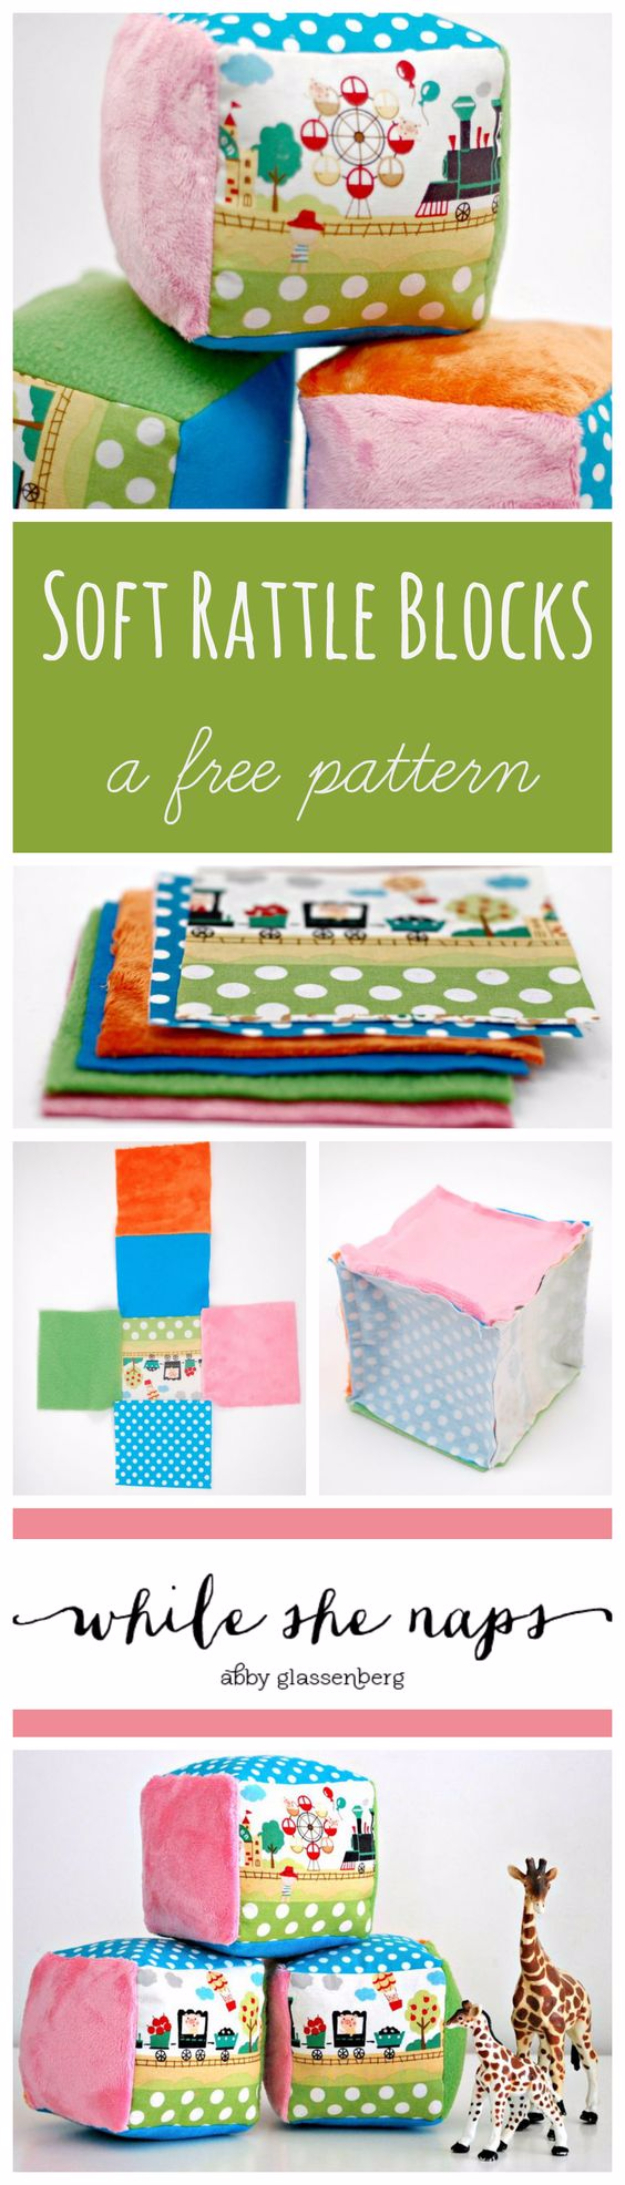 DIY Gifts for Babies - Soft Rattle Blocks - Best DIY Gift Ideas for Baby Boys and Girls - Creative Projects to Sew, Make and Sell, Gift Baskets, Diaper Cakes and Presents for Baby Showers and New Parents. Cool Christmas and Birthday Ideas #diy #babygifts #diygifts #baby